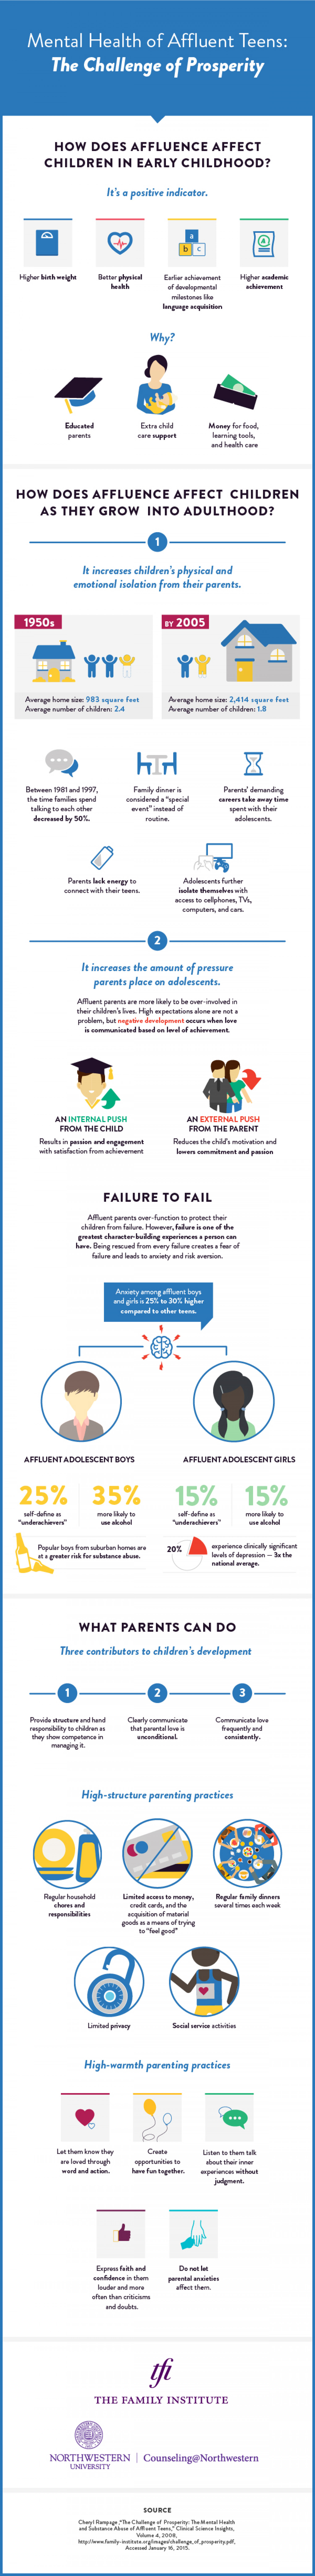 Mental Health of Affluent Teens: The Challenge of Prosperity Infographic